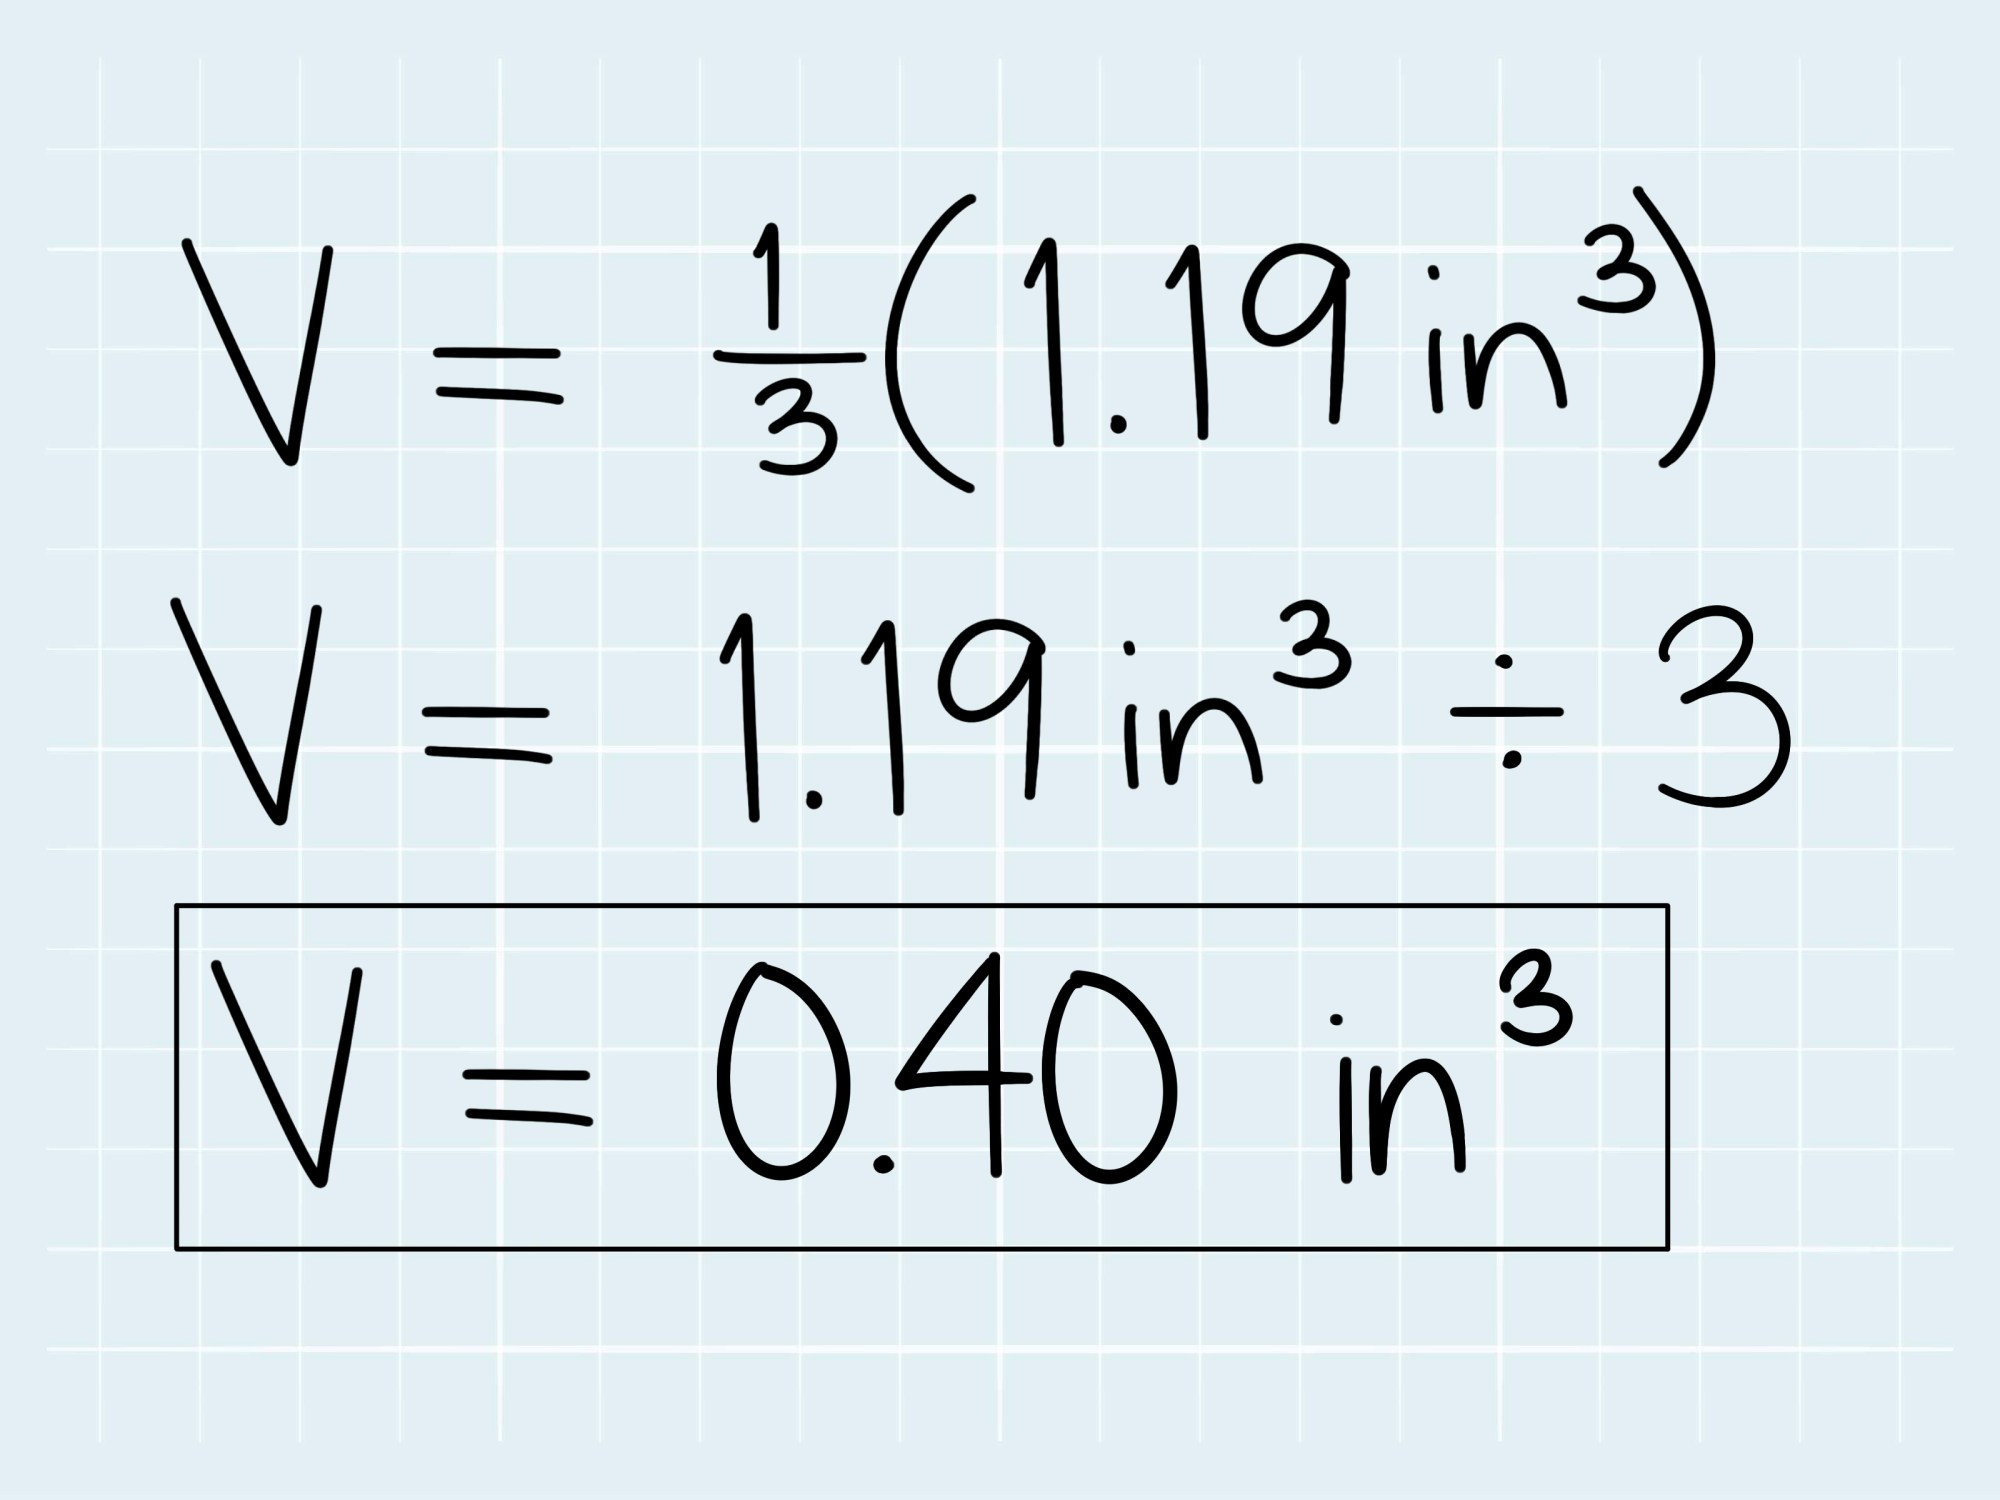 hight resolution of How to Calculate the Volume of a Cone: 5 Steps (with Pictures)